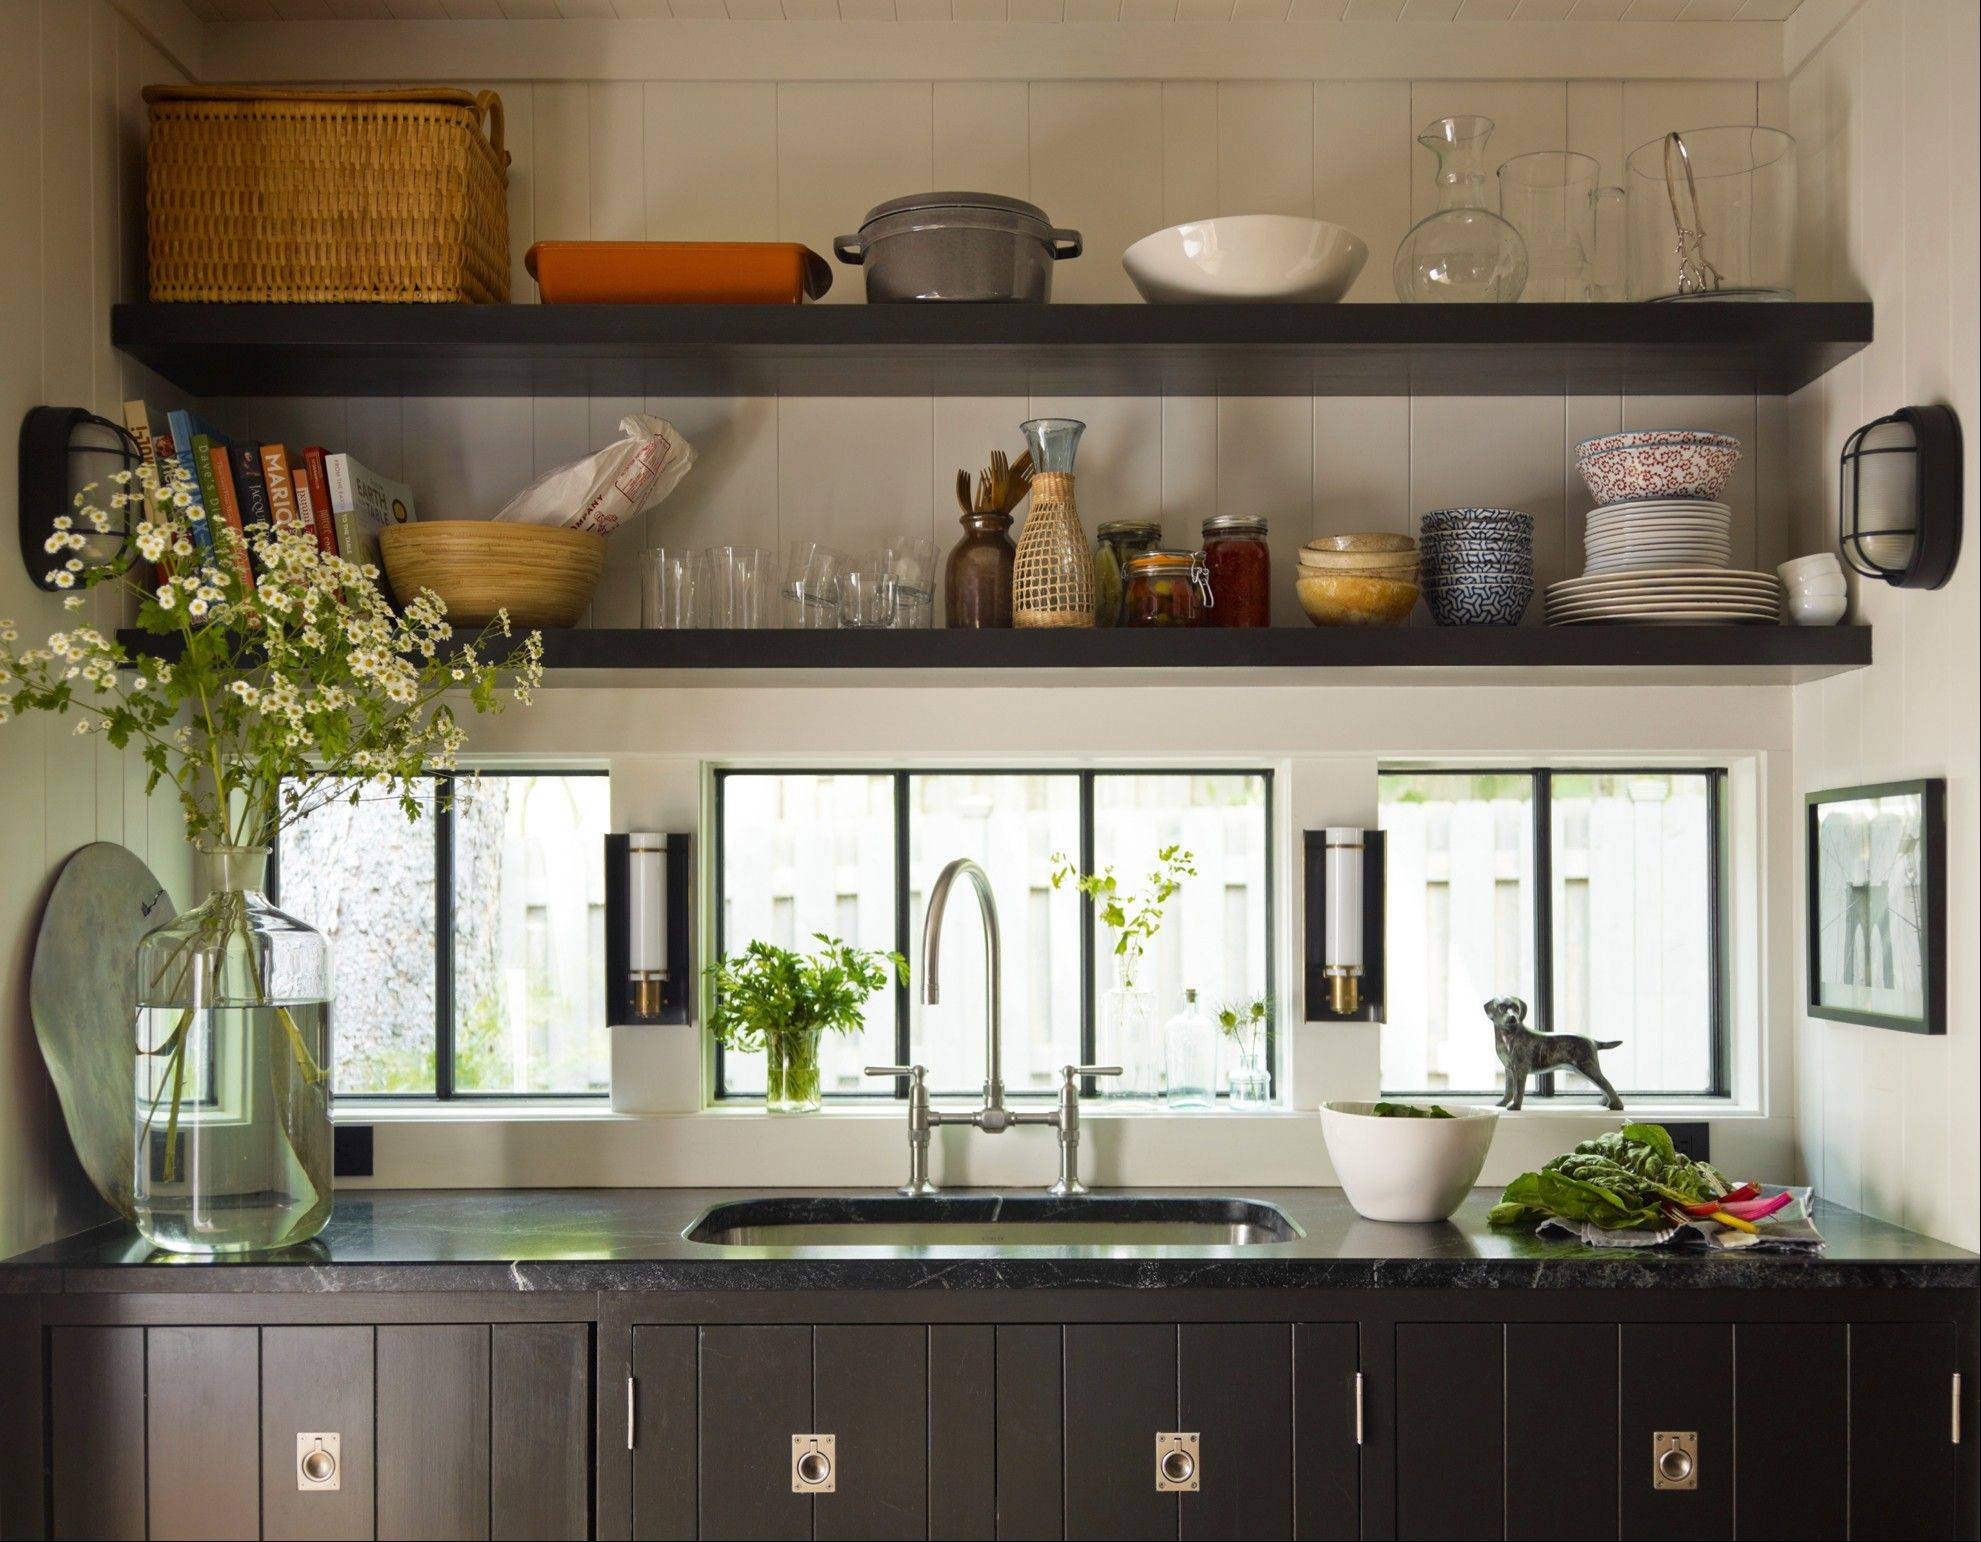 The view from the kitchen sink is a neighbor's fence, so Thom Filicia made the windows only large enough to bring in light. The faucet is Kohler's HiRise.